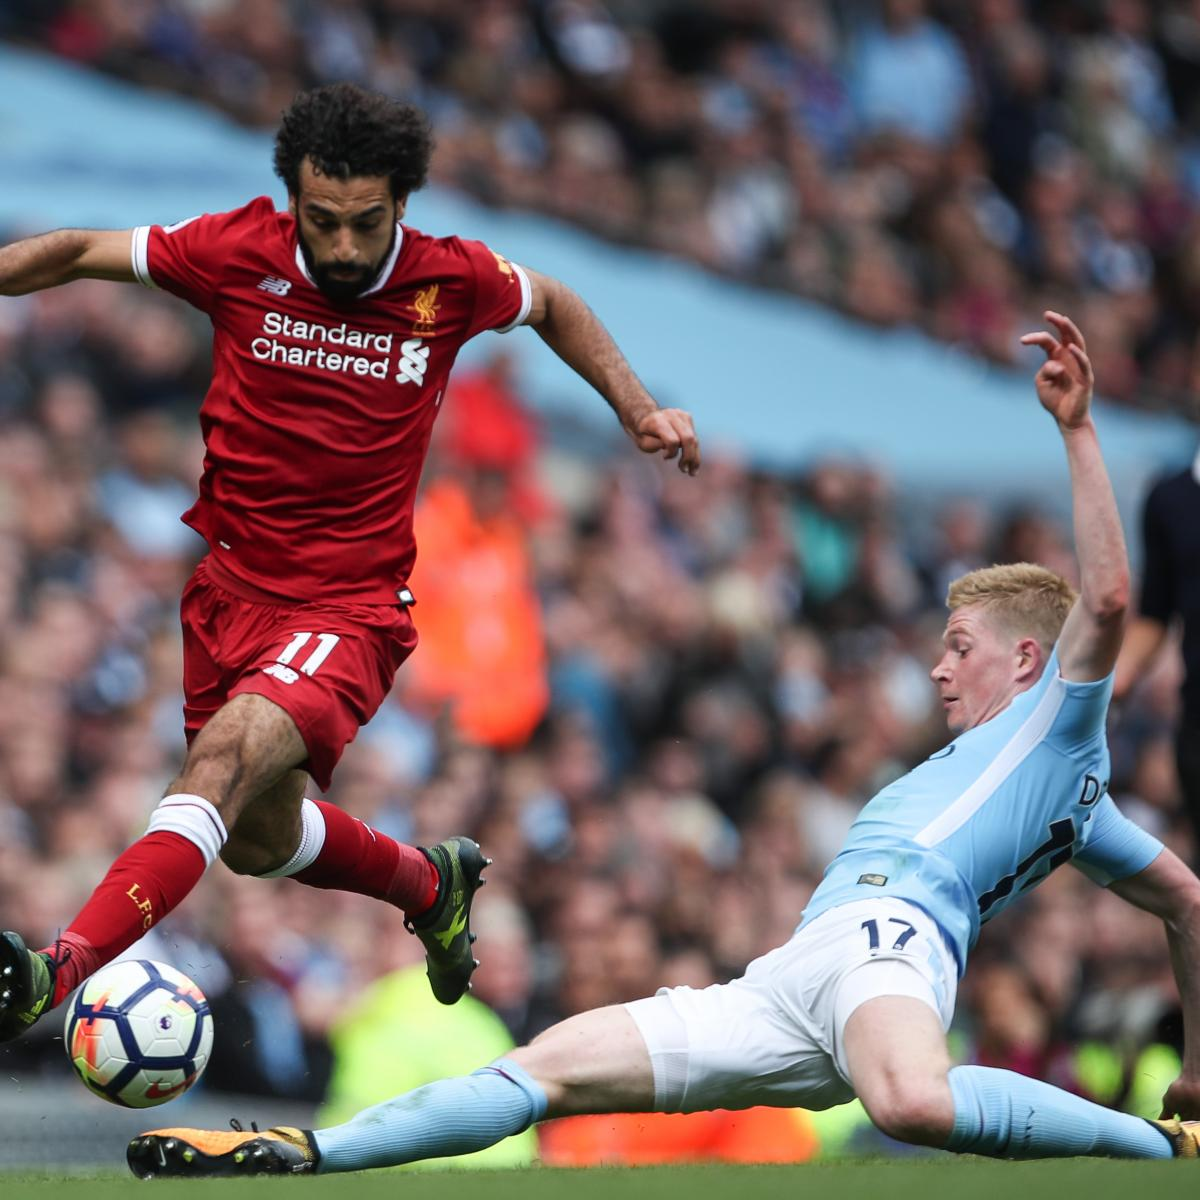 Liverpool vs. Manchester City: Team News, Preview, Live Stream, TV Info